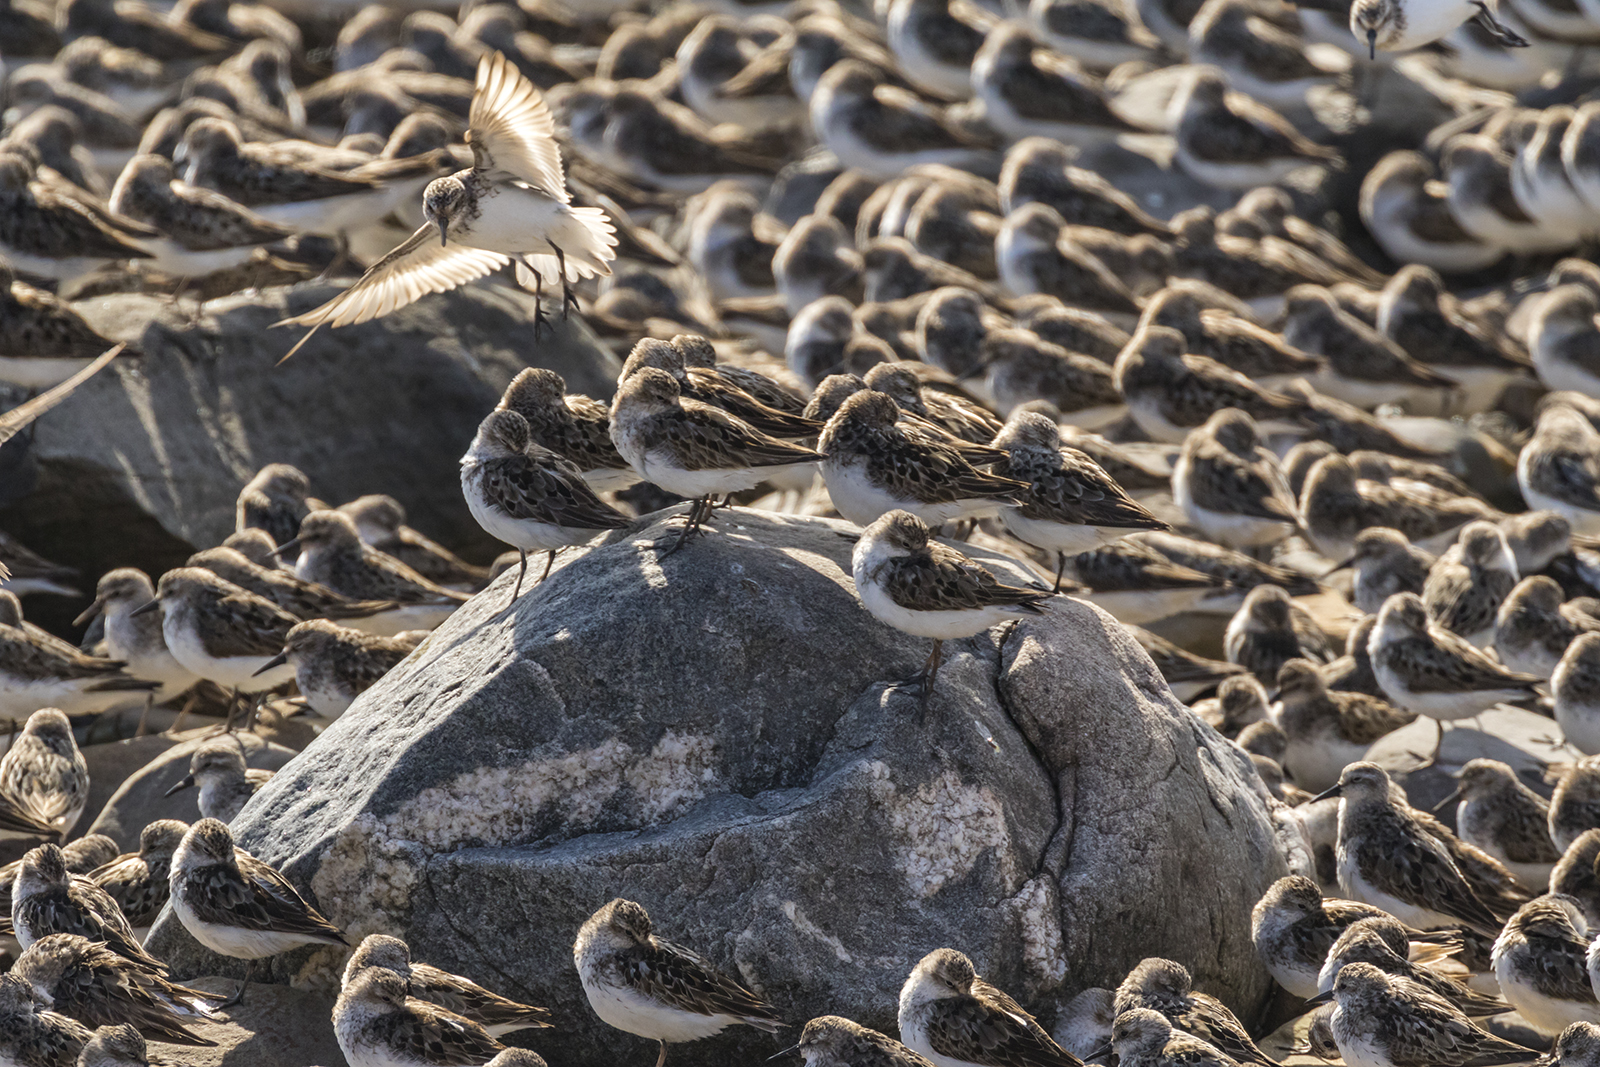 Semipalmated_Sandpipers-04-BRimages.ca